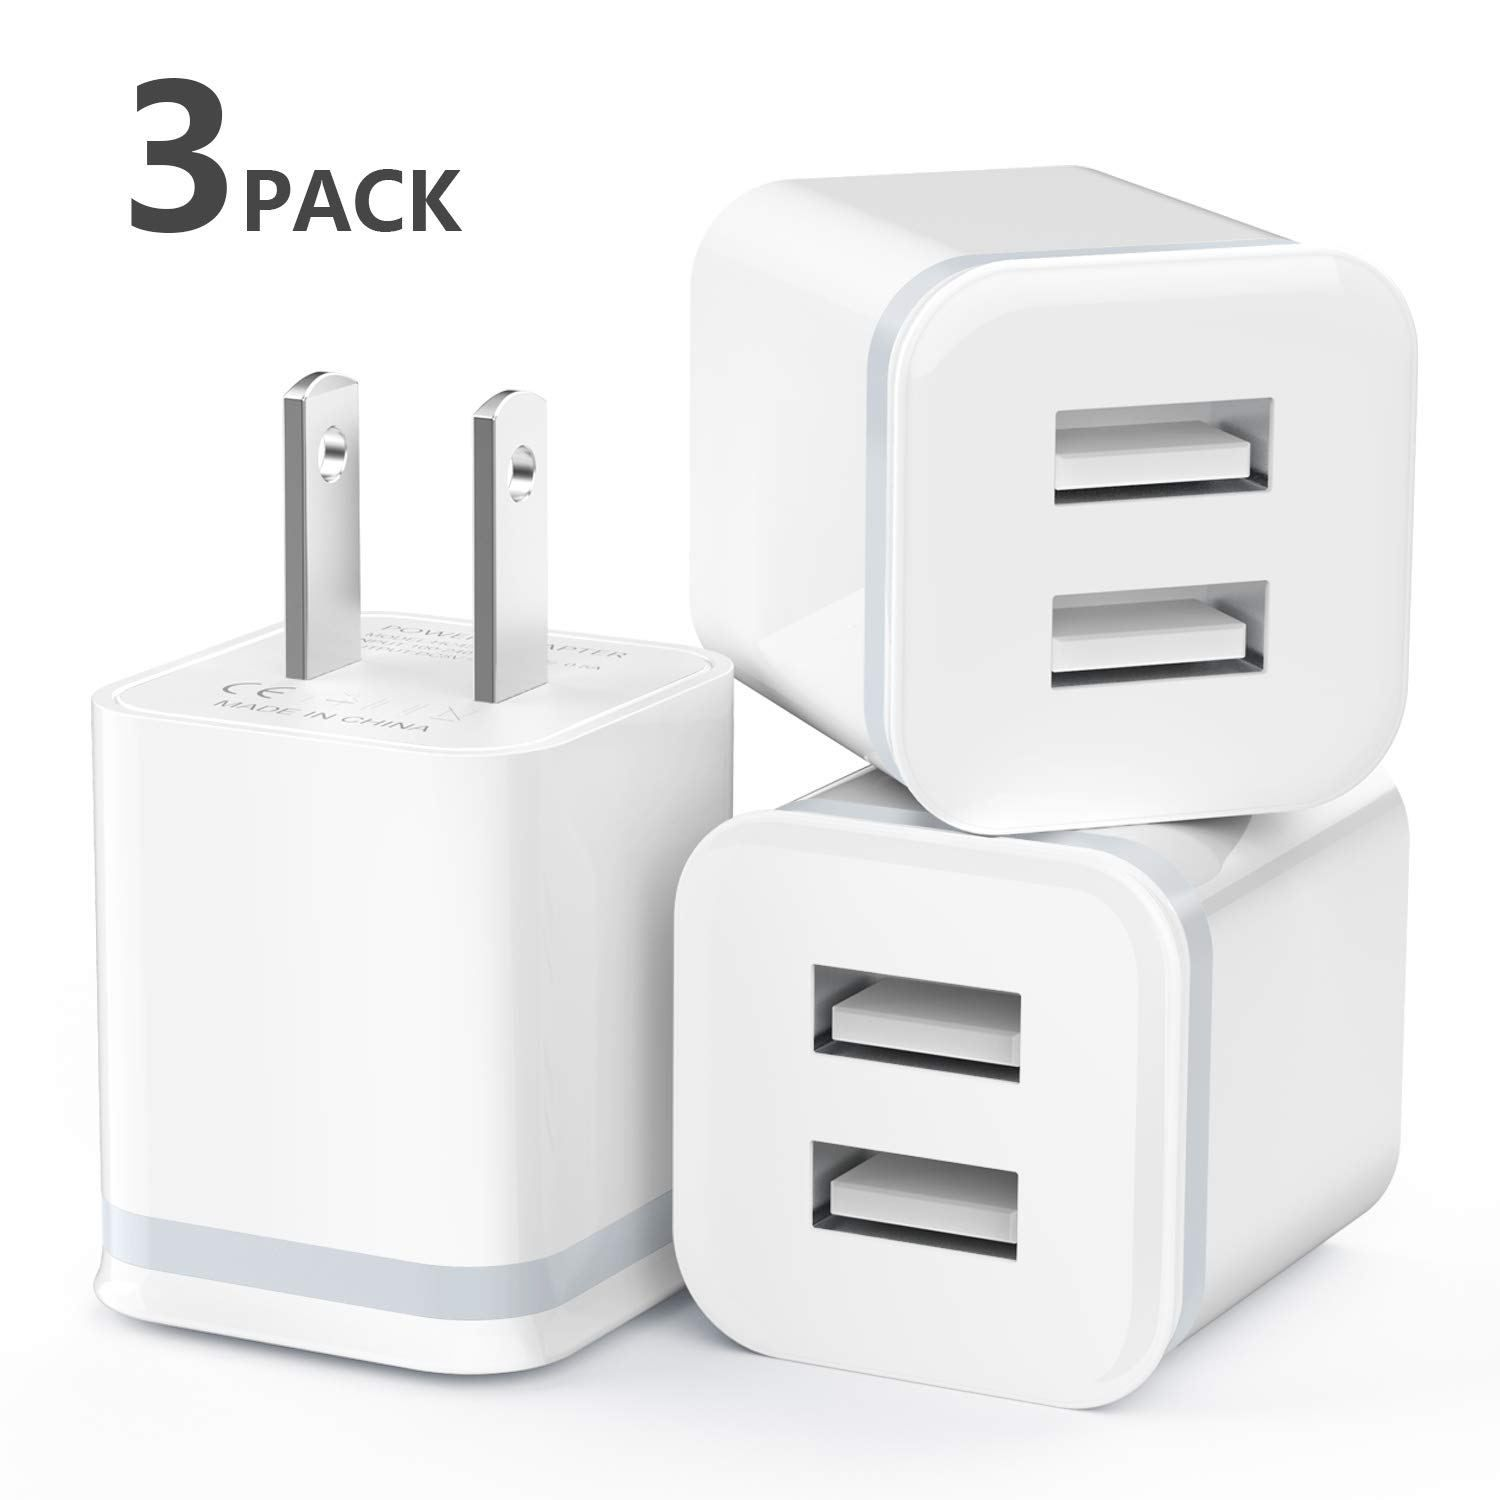 Best USB Wall Charger for Android and